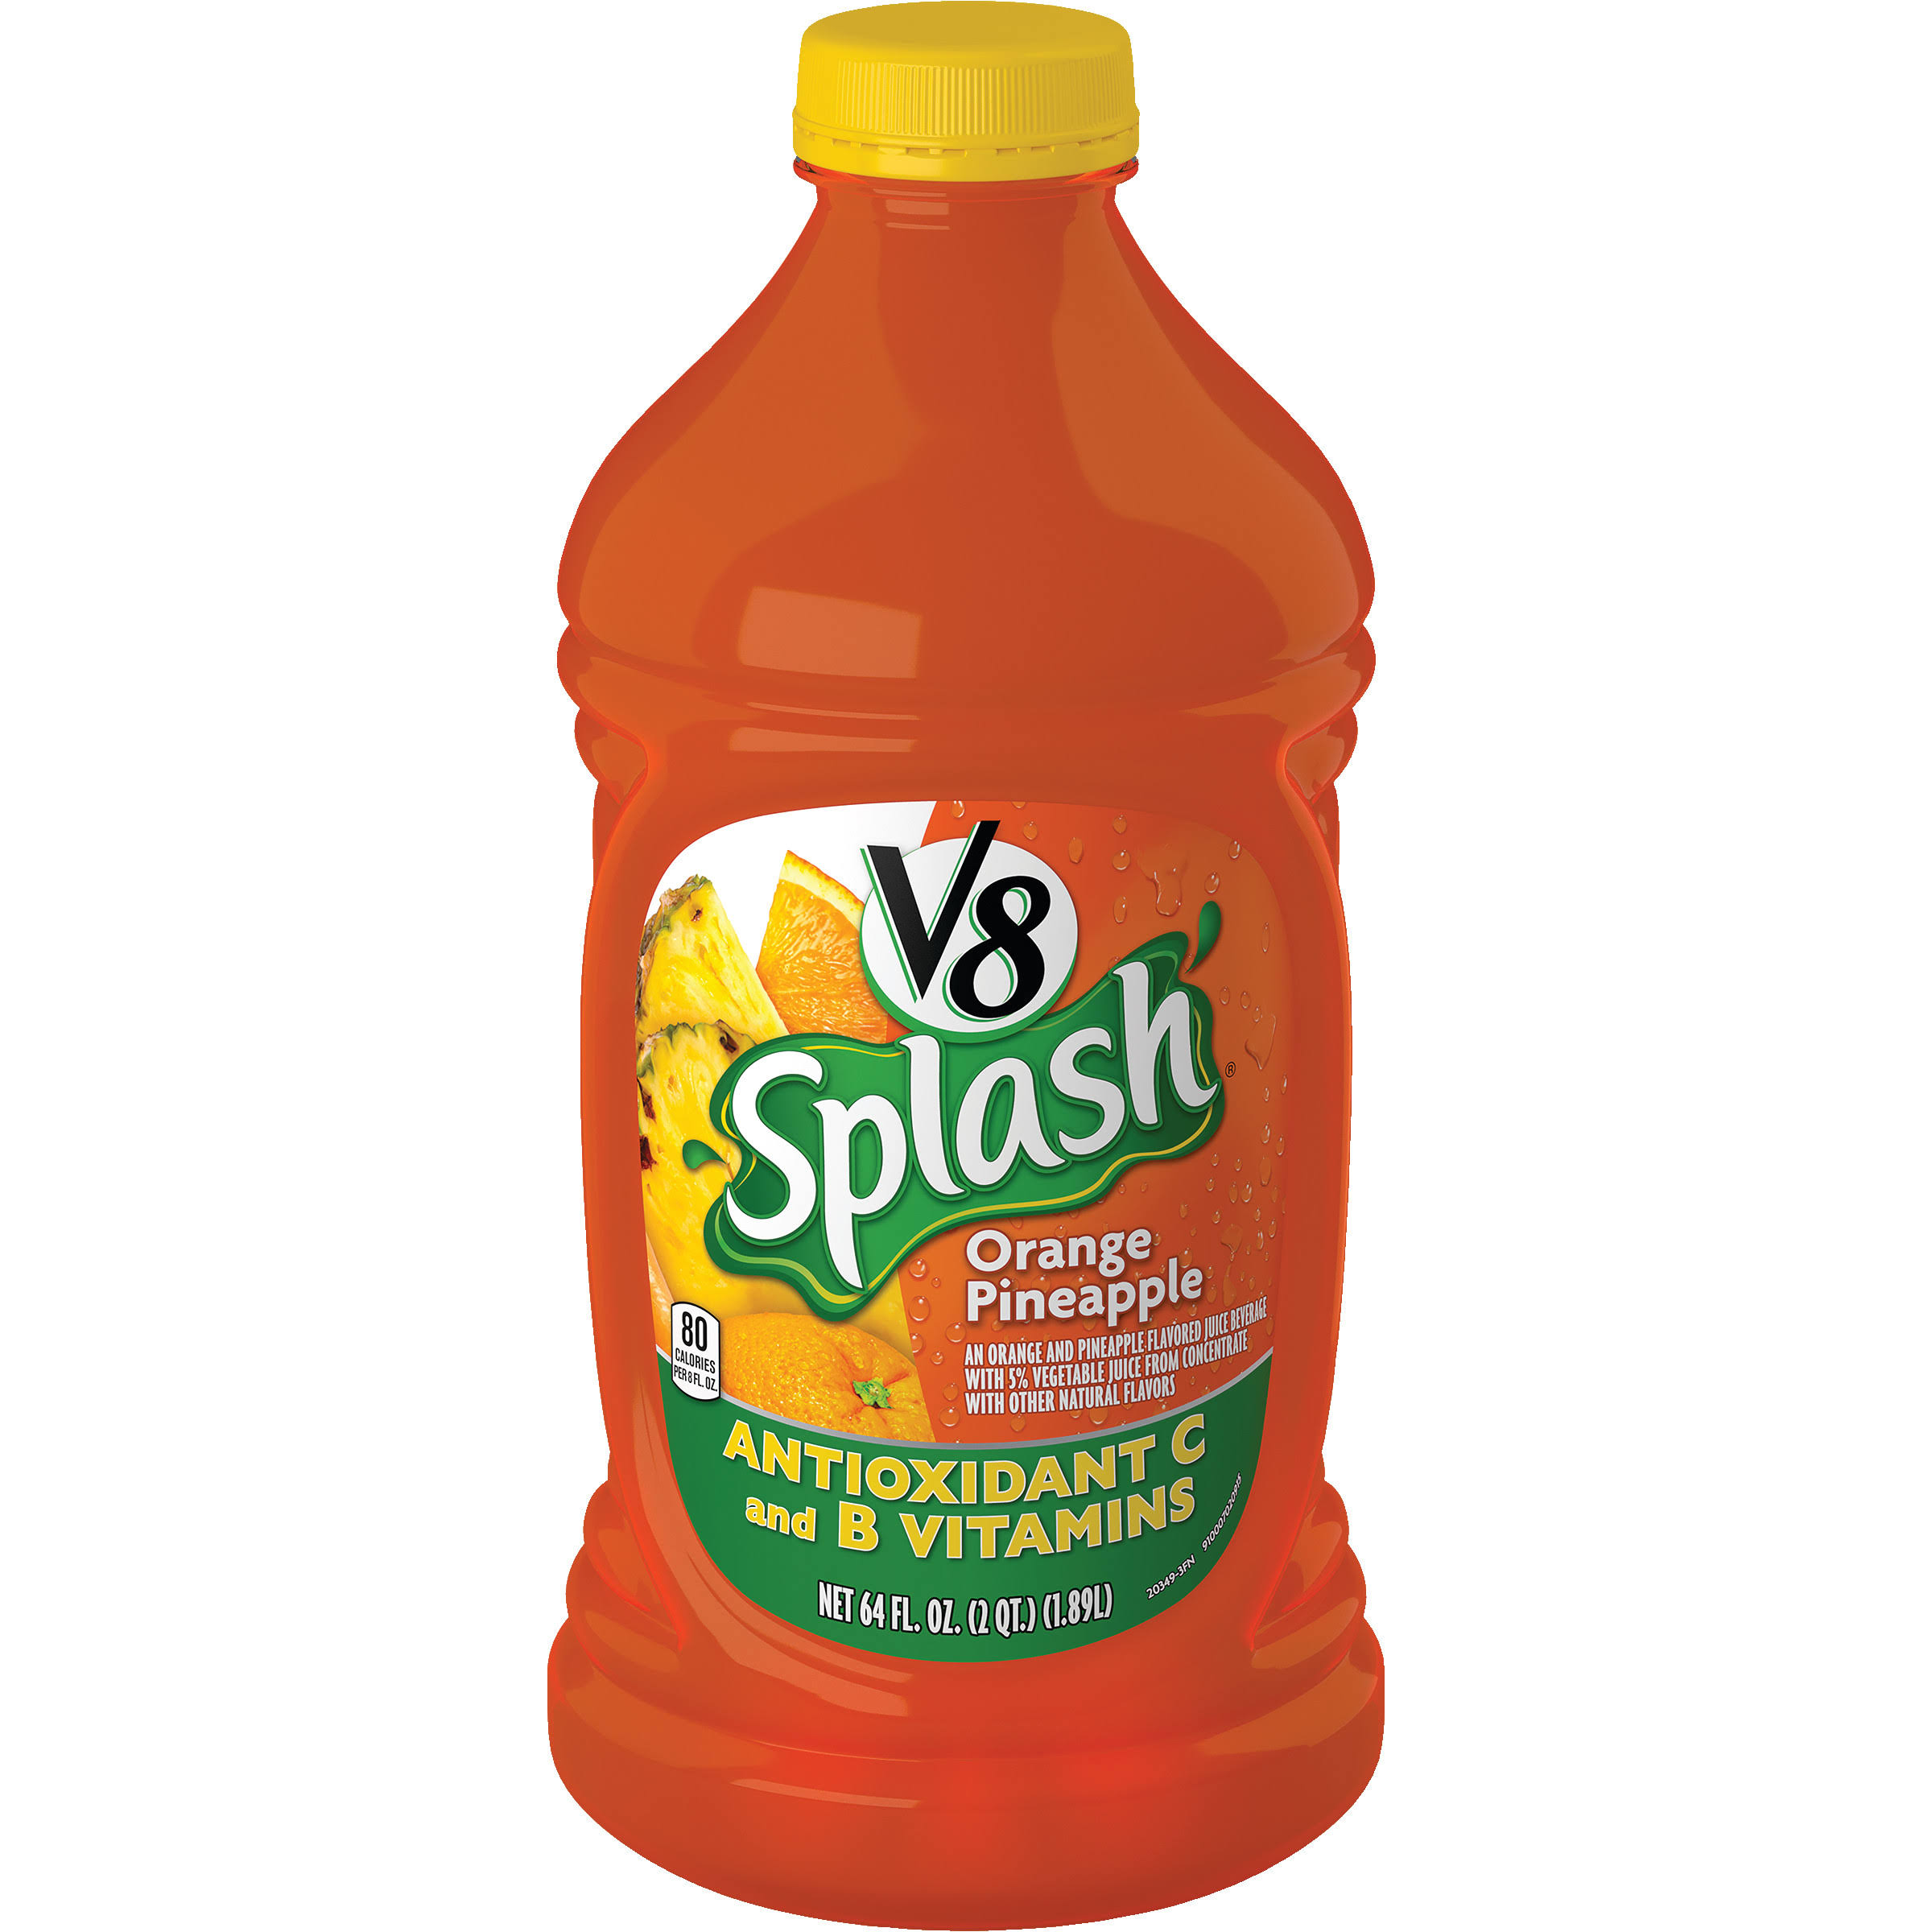 V8 Splash Orange Pineapple - 64oz